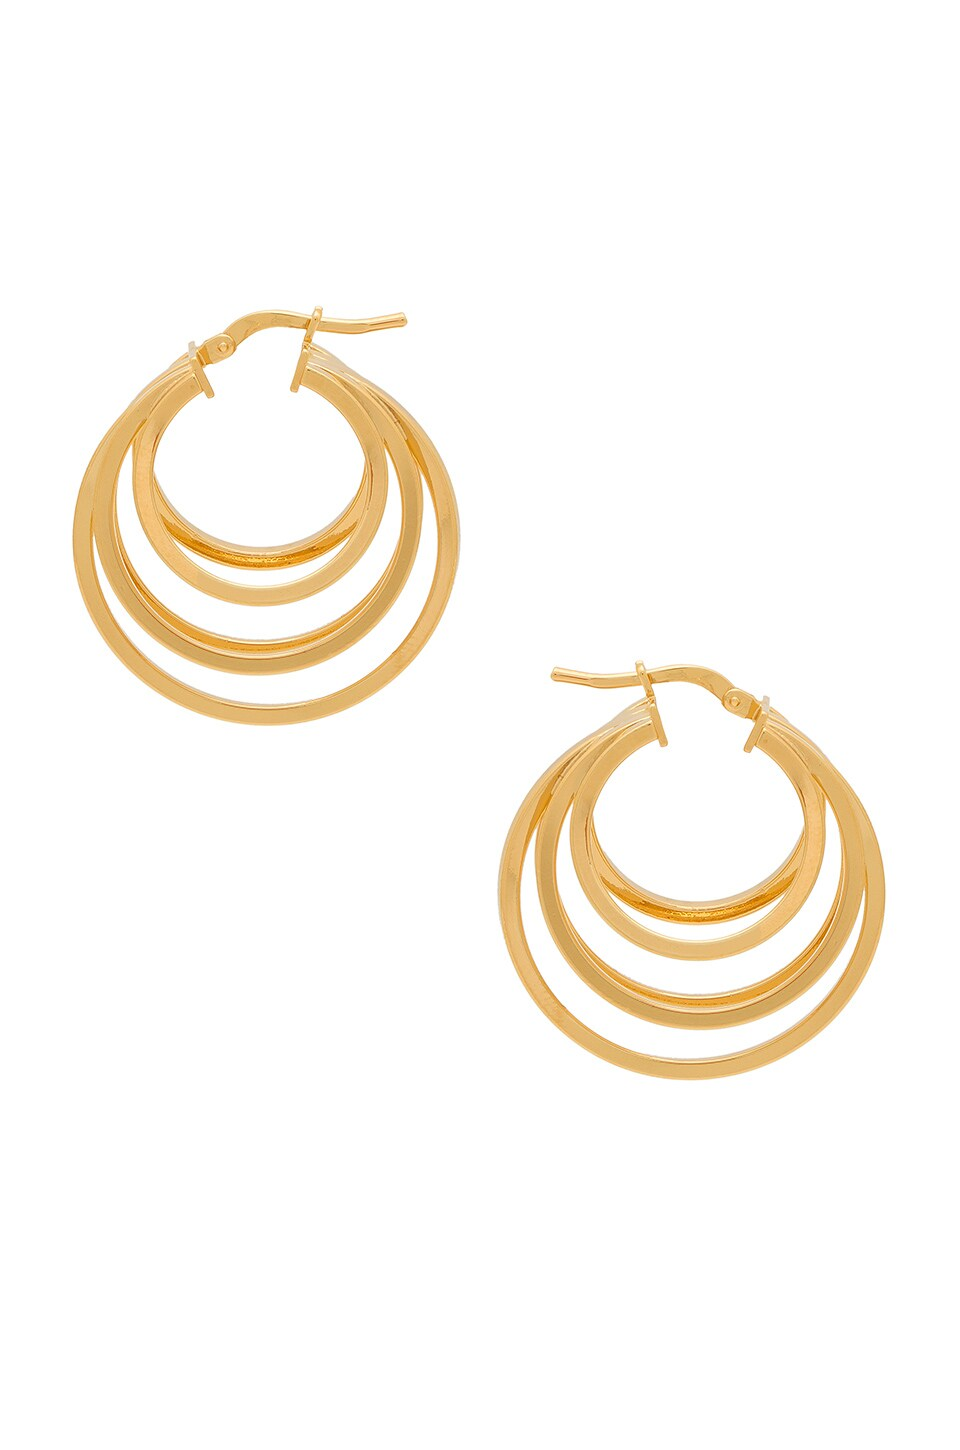 AMBER SCEATS Kenzie Earring in Metallic Gold